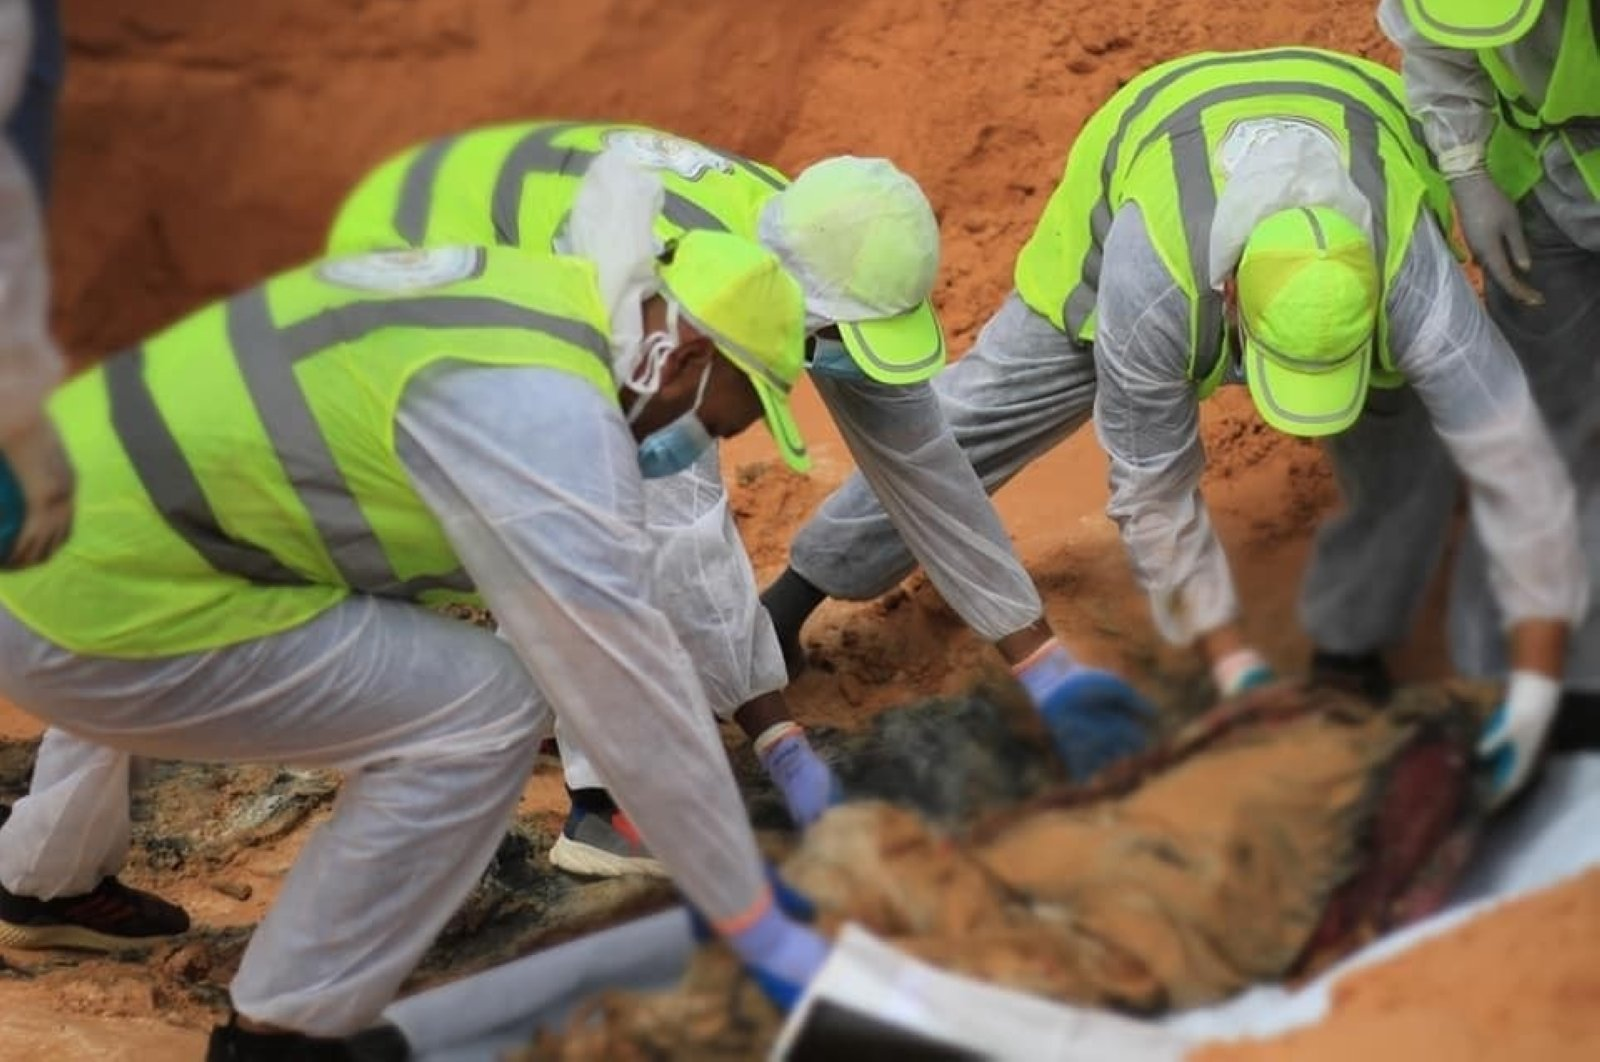 Libyan government workers uncover corpses found in a mass grave in Tarhuna, formerly occupied by the Haftar militias, Sept. 6, 2020. (IHA Photo)